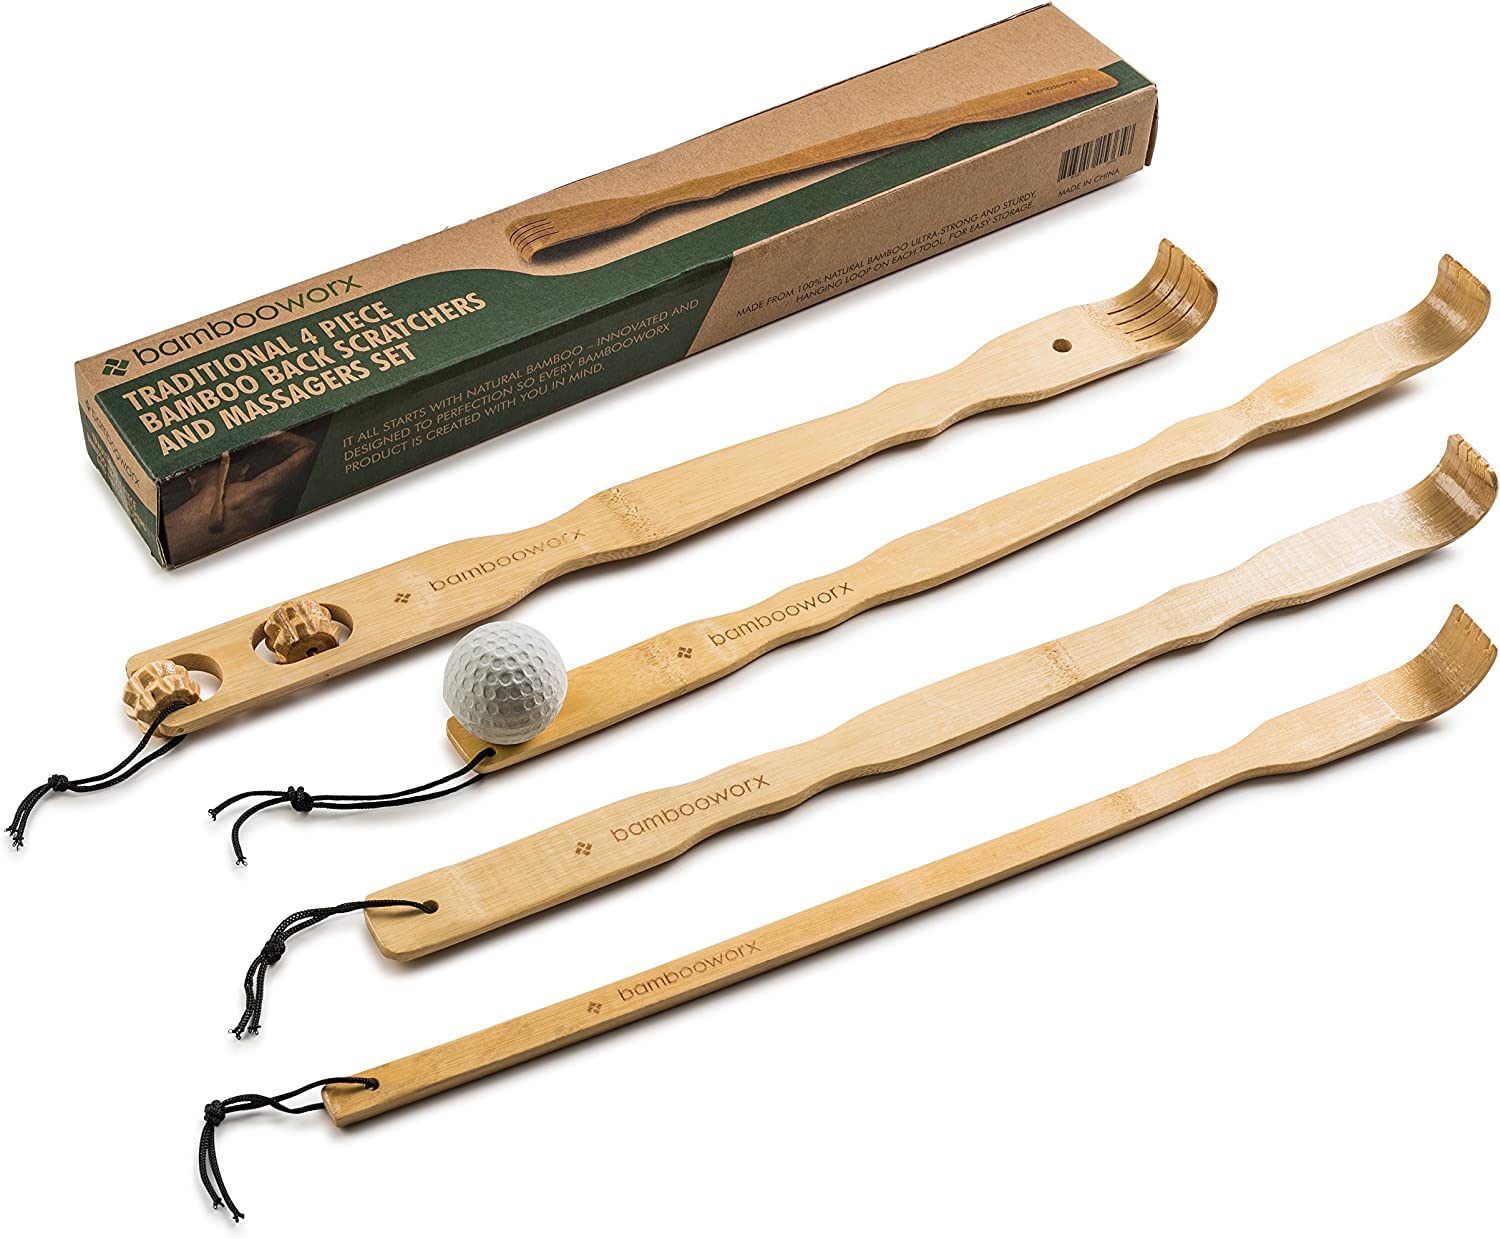 """BambooWorx 4 Piece Traditional Back Scratcher and Body Relaxation Massager Set for Itching Relief, 17.5"""", Strong and Sturdy, 100% Natural Bamboo"""